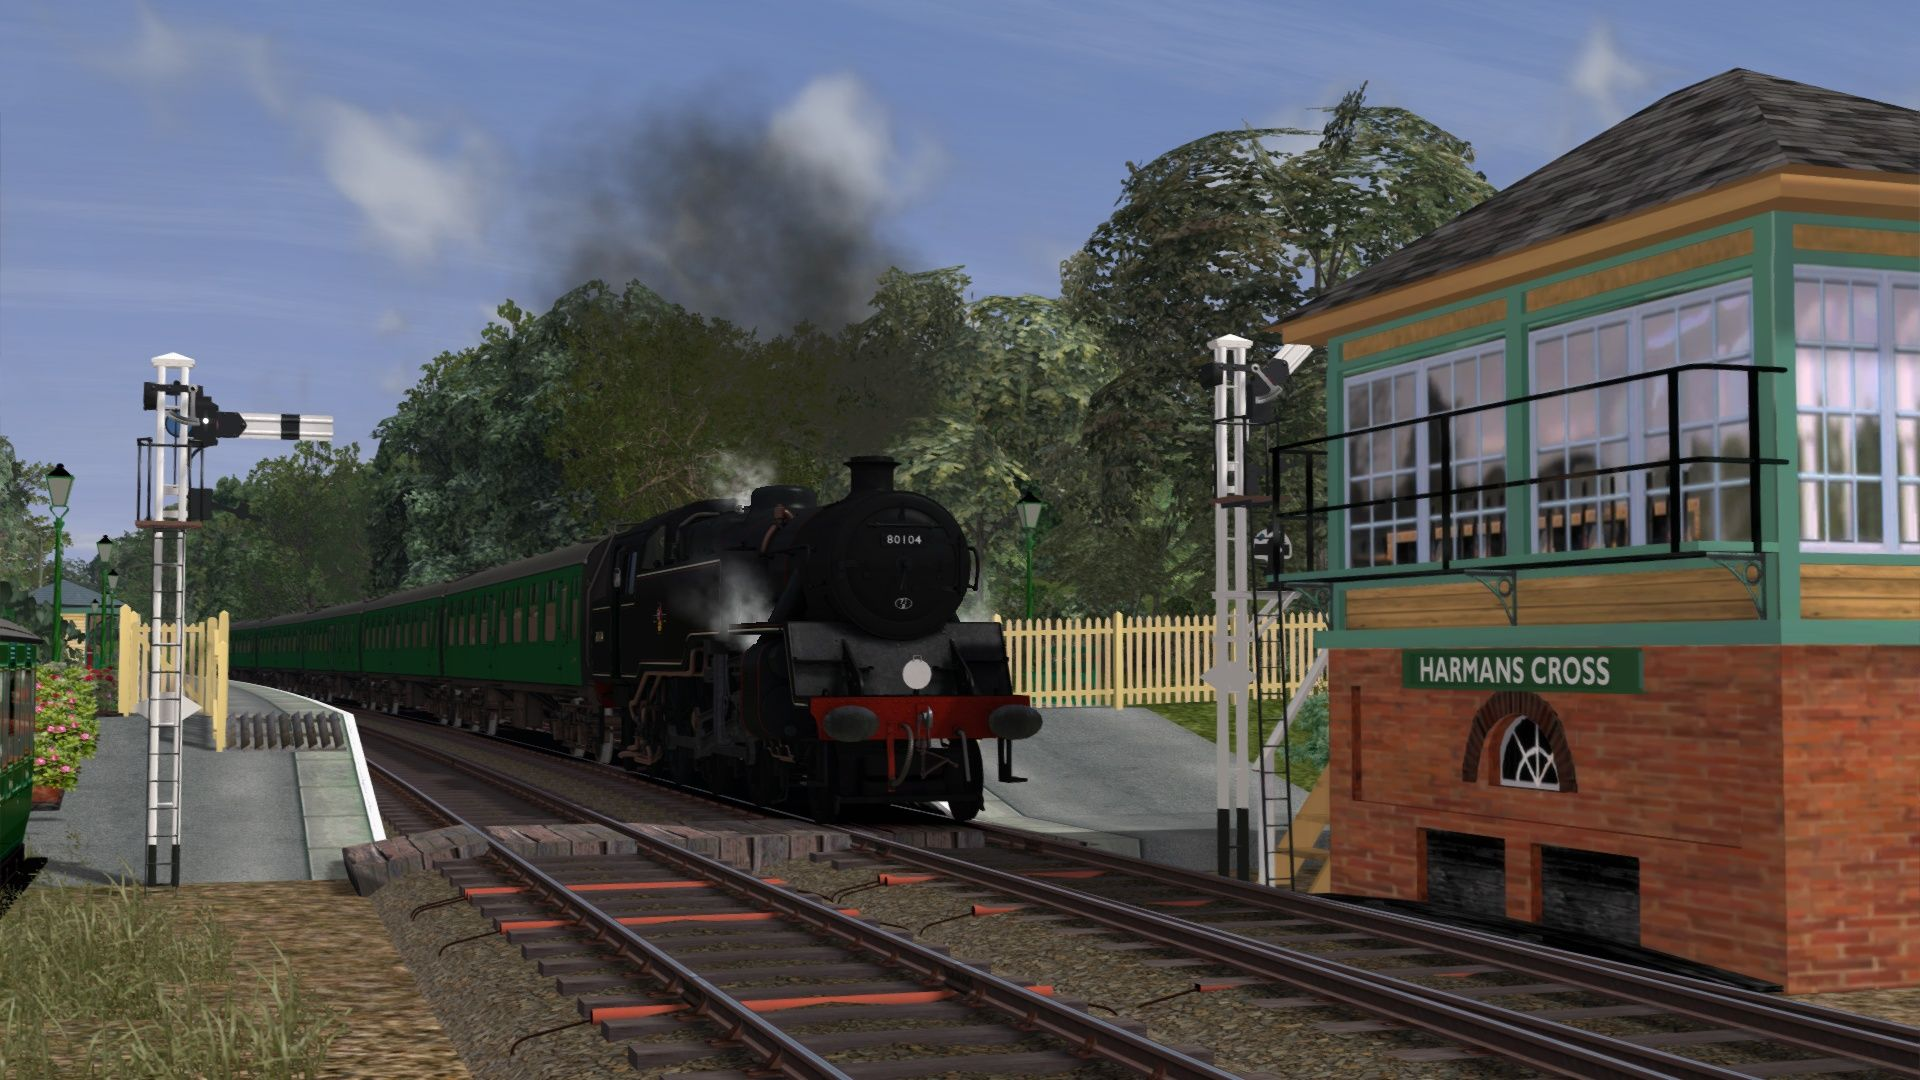 Screenshot_Swanage Railway_50.61997--2.02831_16-12-29